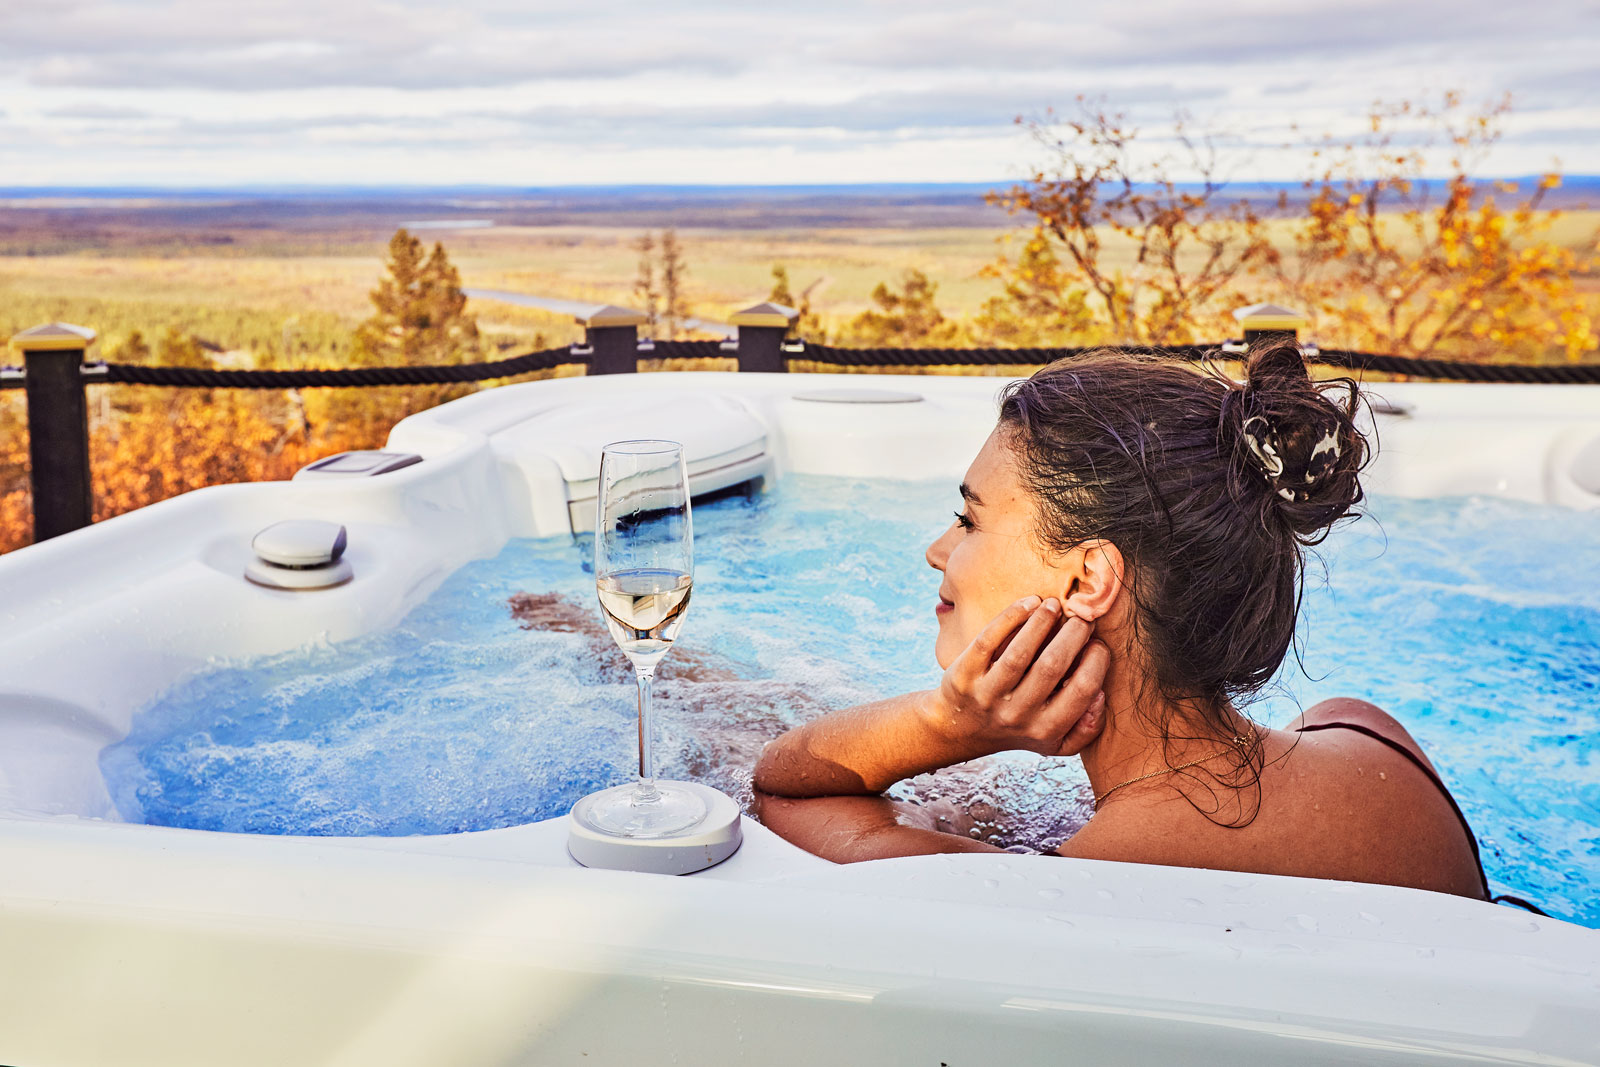 Enjoying the complementary shampagne in the outdoor jacuzzi of the Suite Igloo